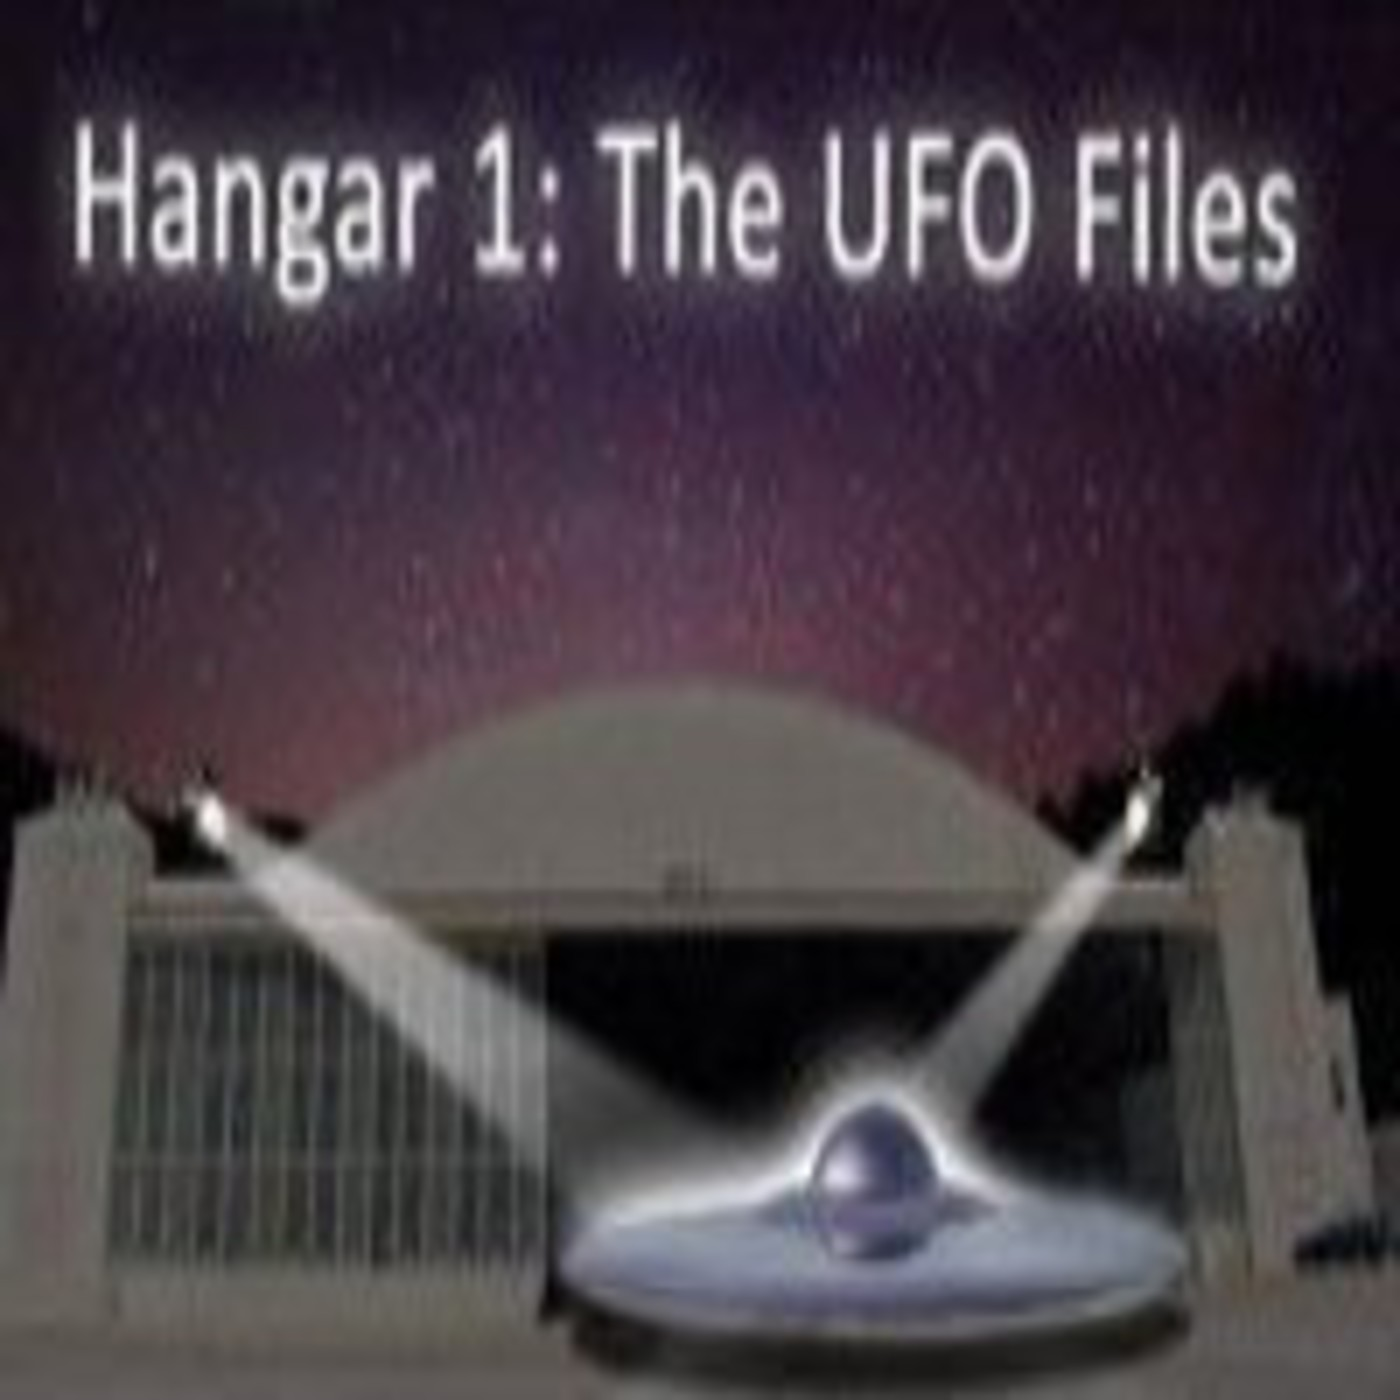 Hangar 1 archivos extraterrestres online dating - dating over 40 statistics about the fall